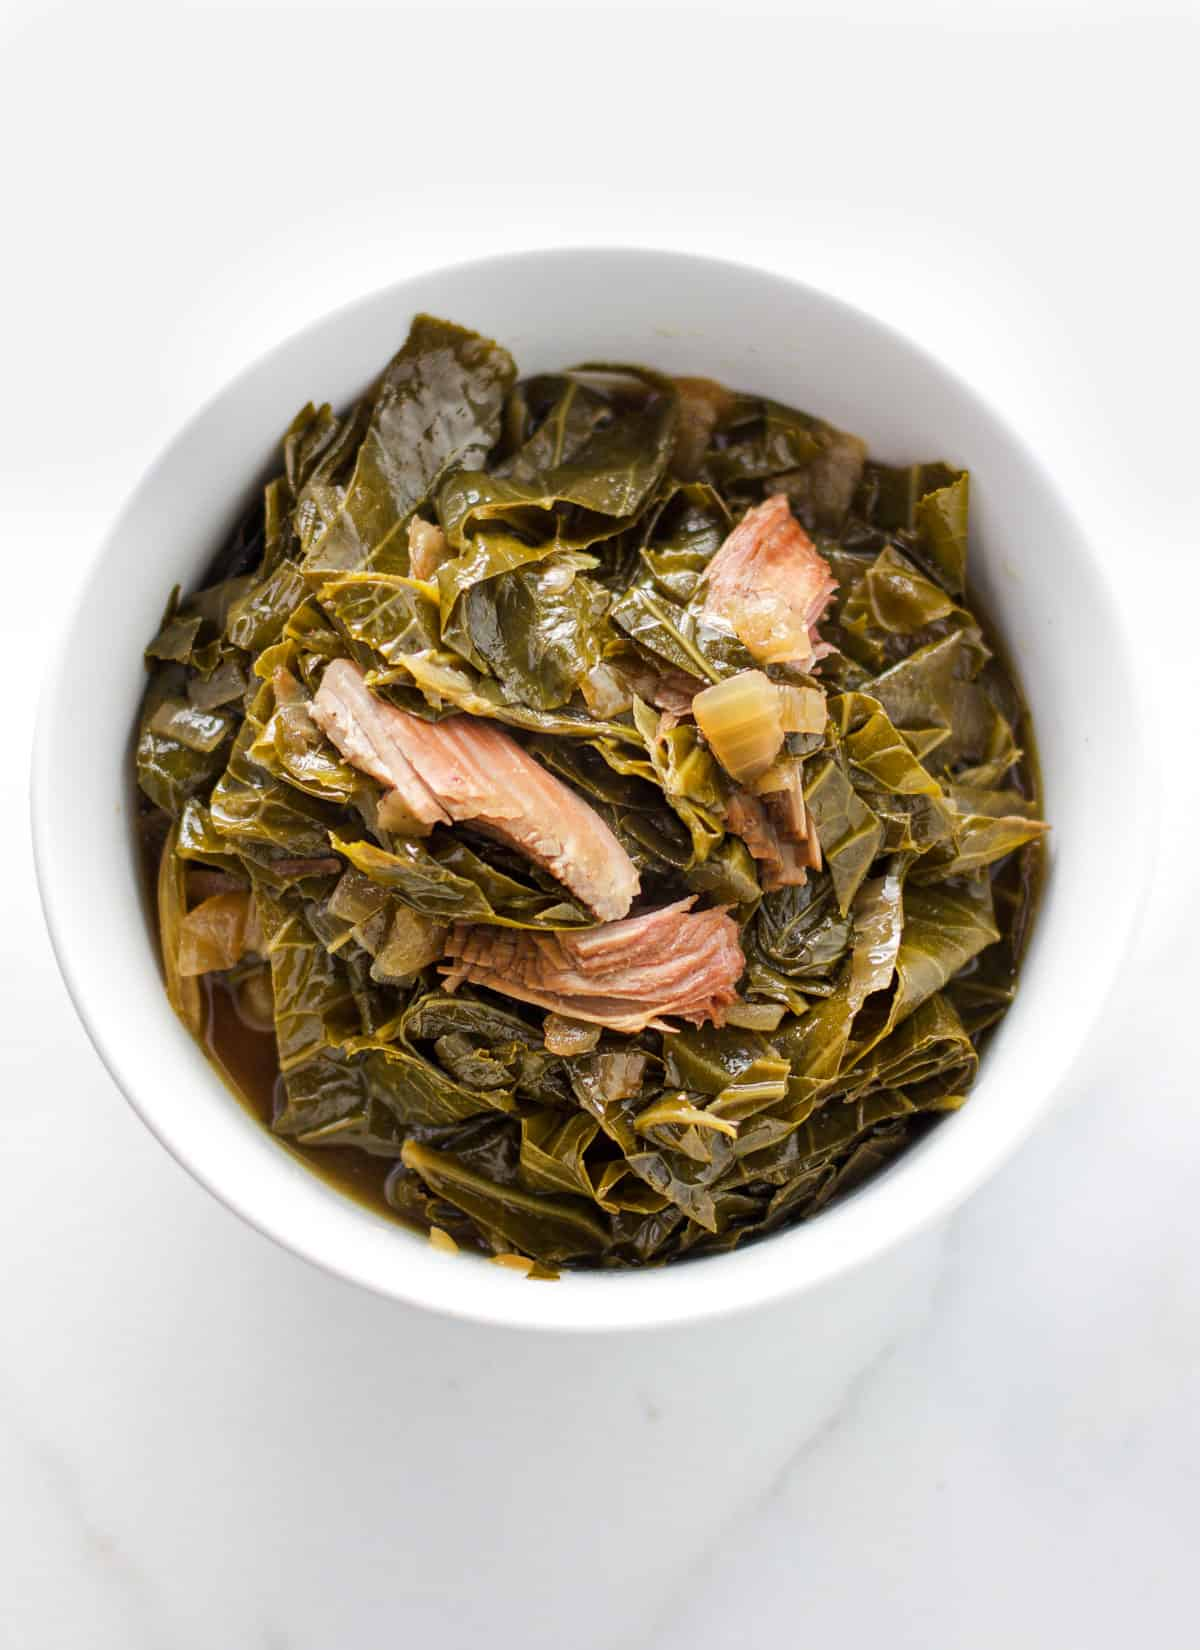 Collard greens in a bowl with smoked turkey.